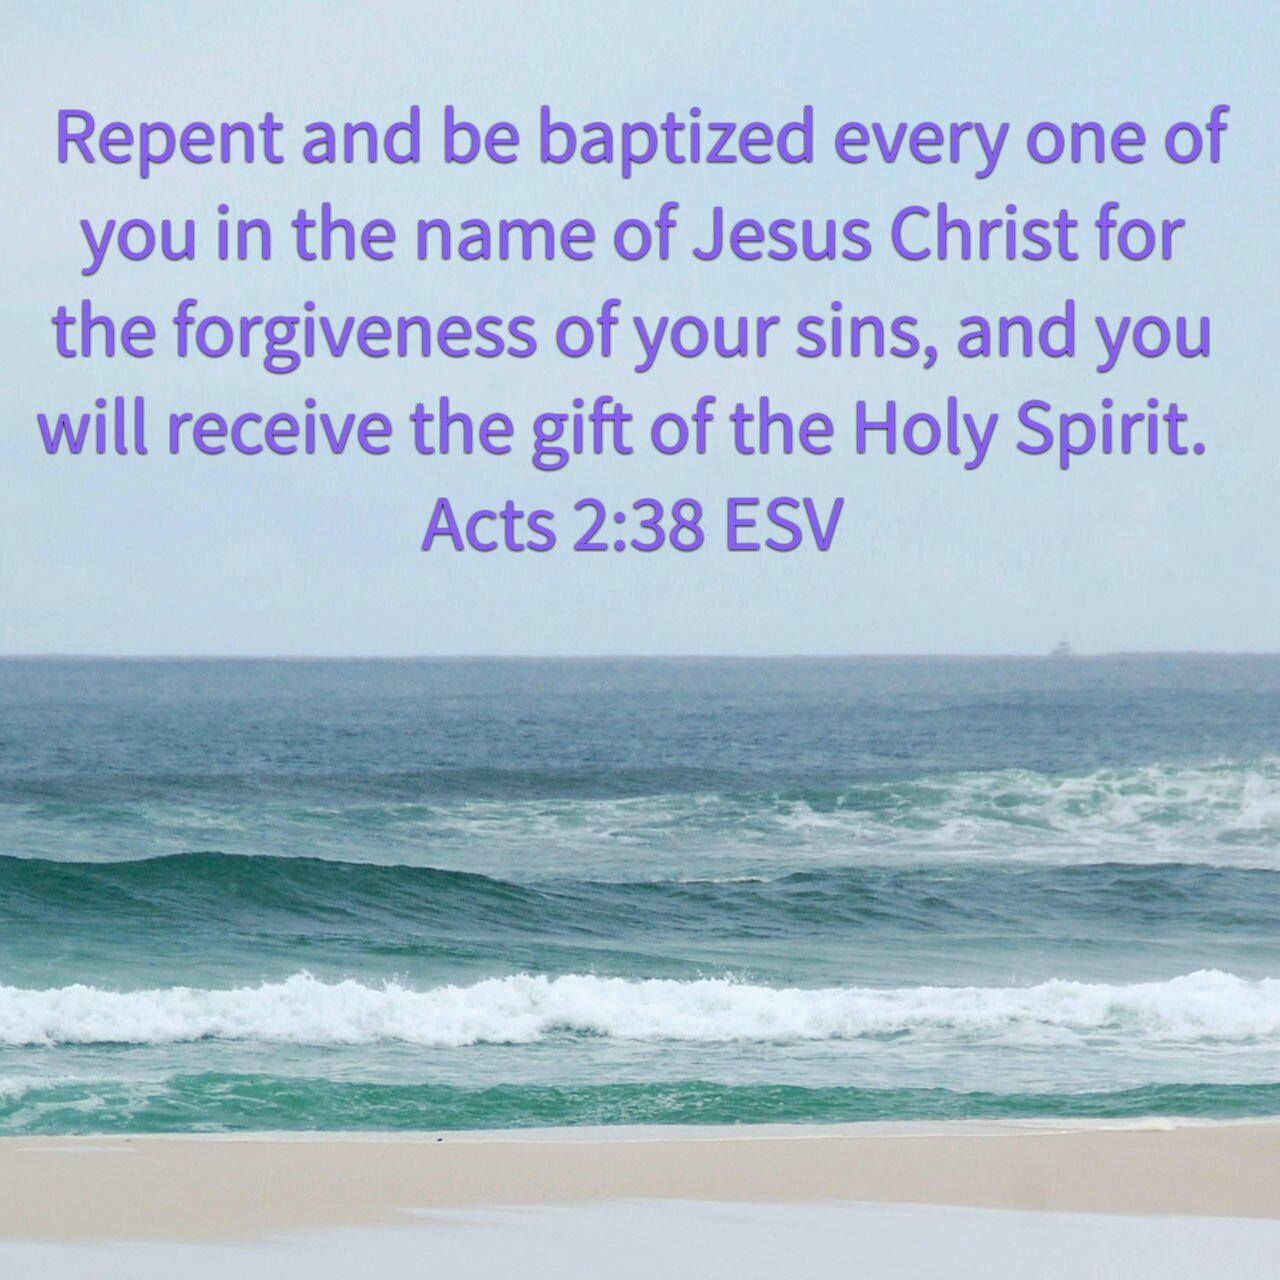 Acts 2-38